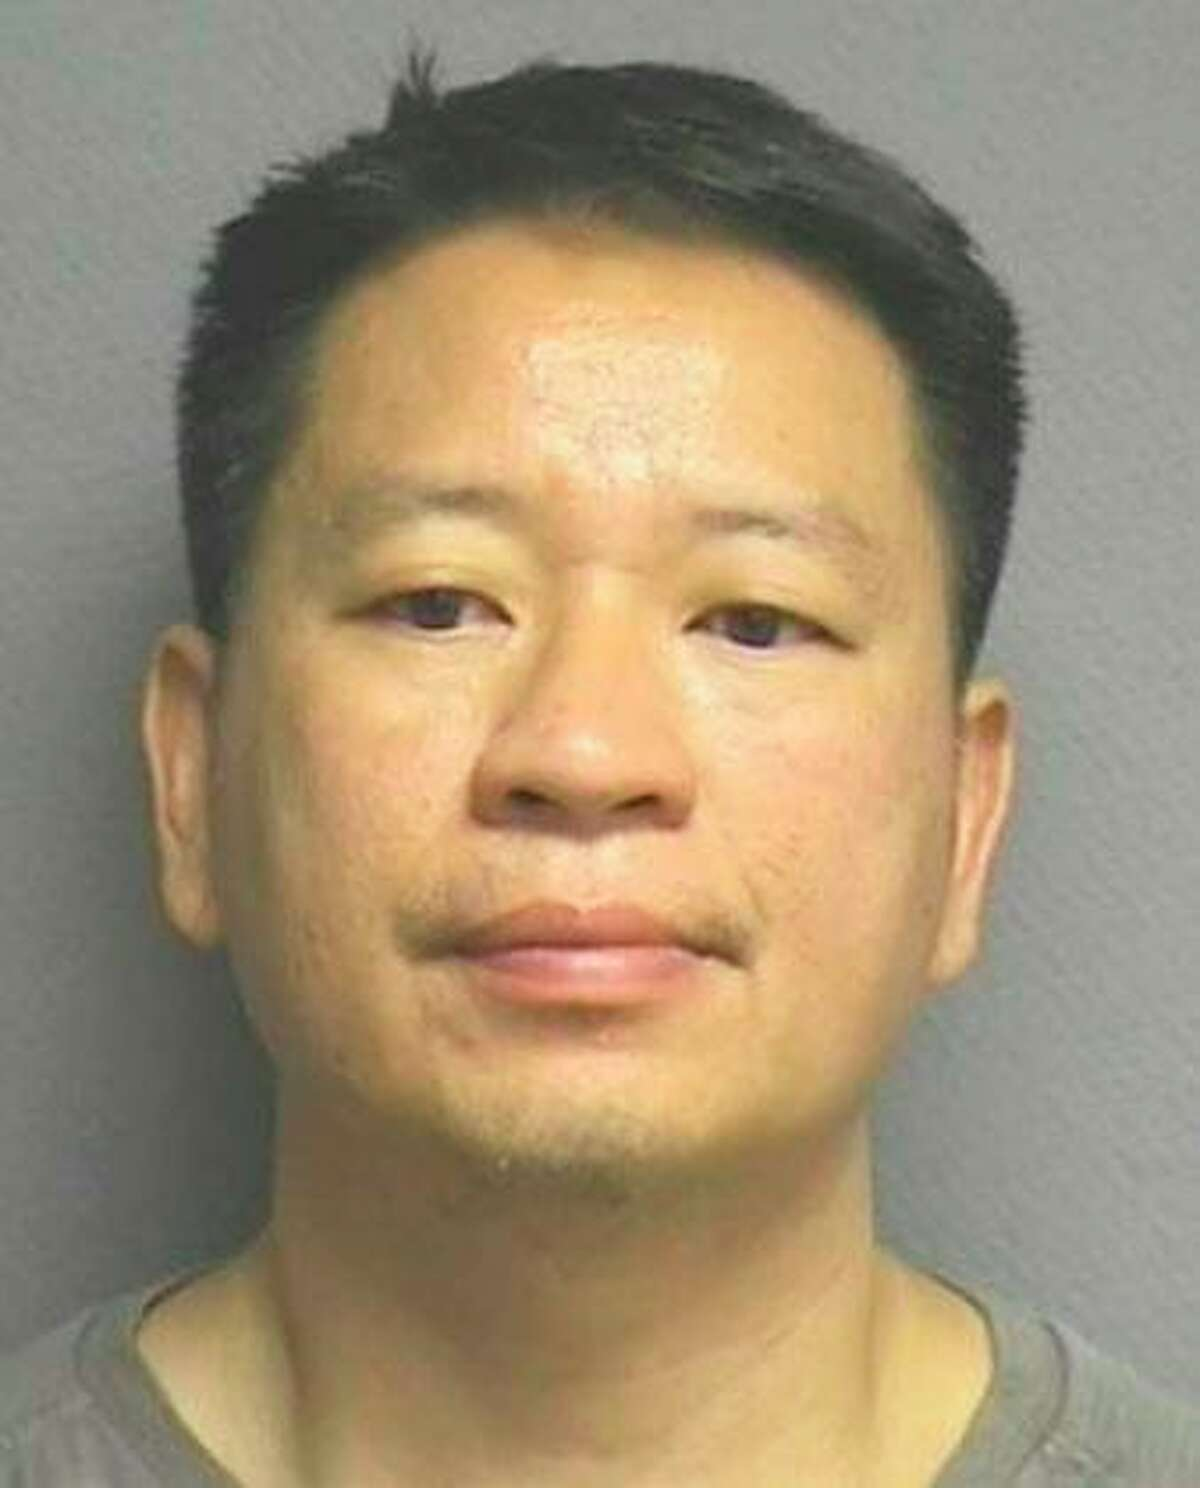 Minh A. Dang, 46, was sentenced to two years deferred adjudication this week to delivery/offer to deliver dangerous drugs. He was arrested and charged in 2016 after a mass overdose in Hermann Park in which first responders had to take 16 people to the hospital after they used synthetic cannabinoids.